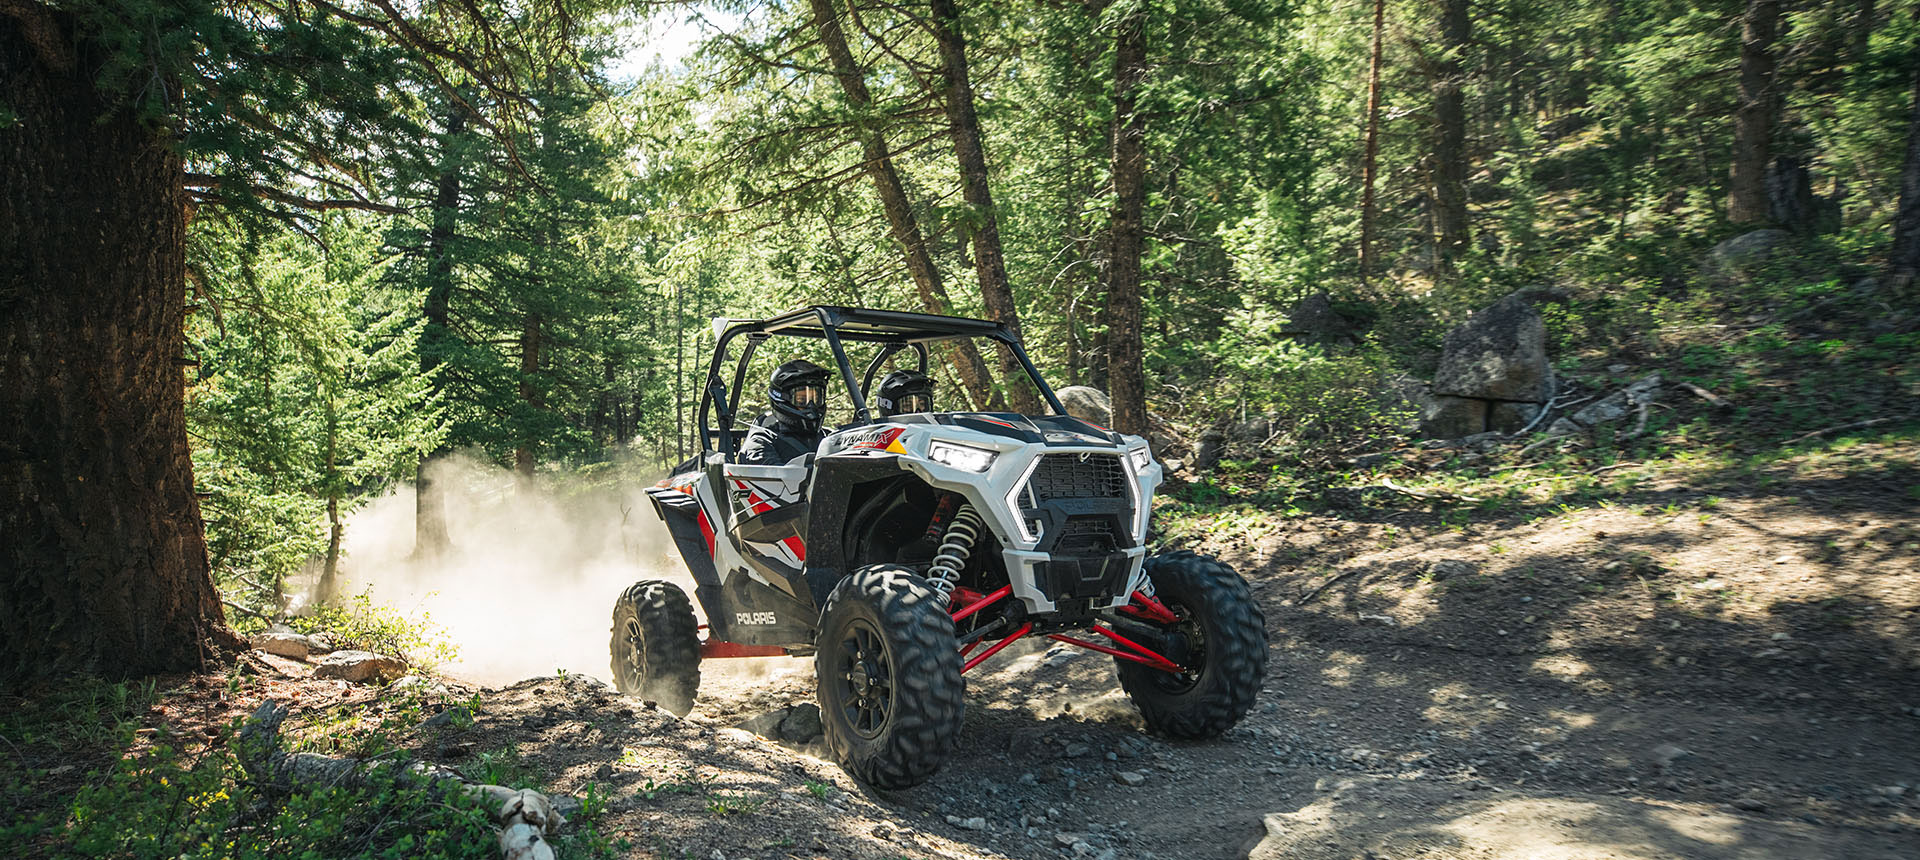 2019 Polaris RZR XP 1000 in Corona, California - Photo 10